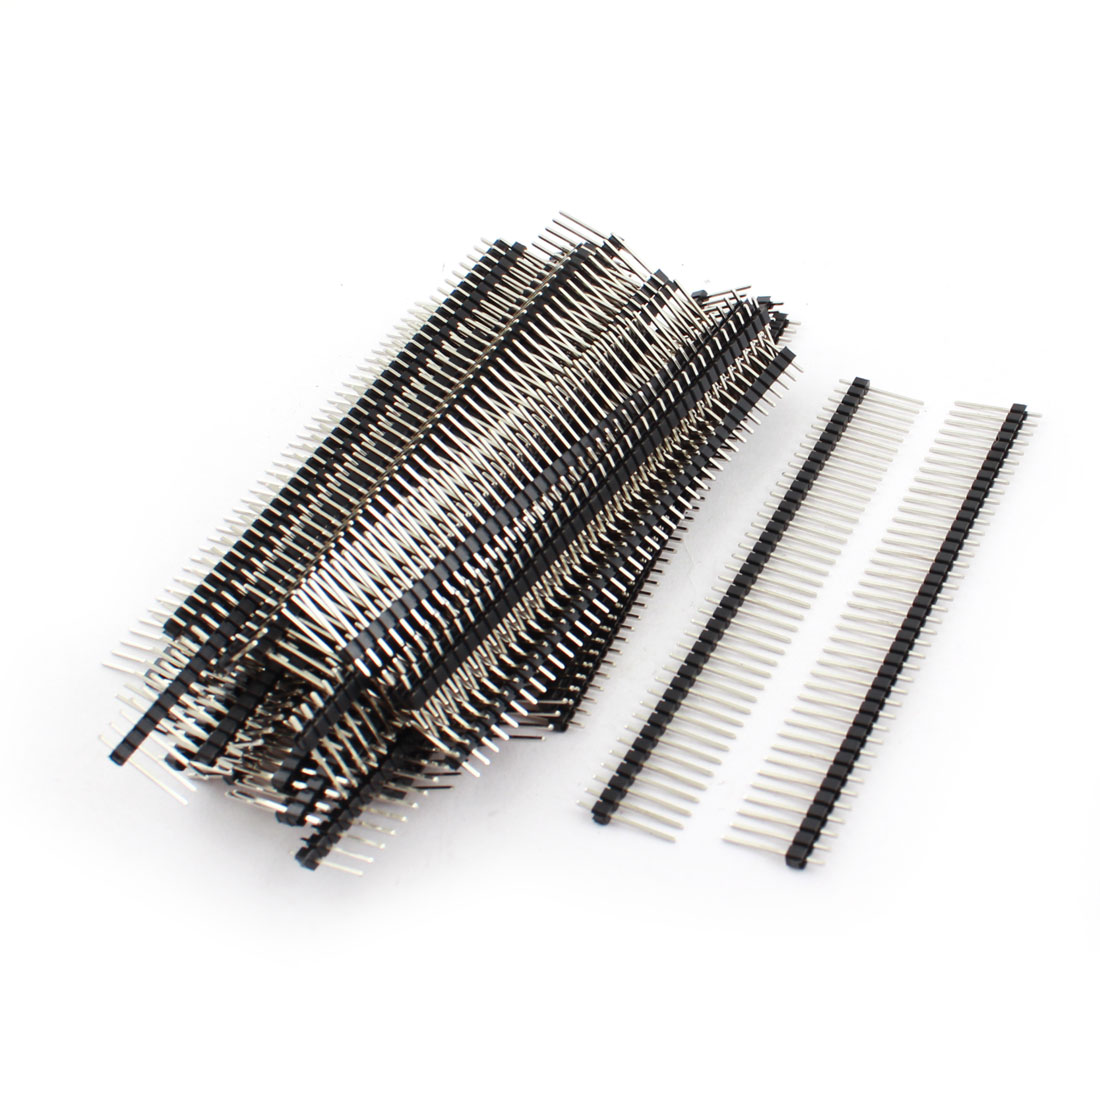 50 Pcs 2.54mm Pitch 40Pin Male Single Row Through Hole Straight Pin Header Connector Strip 17mm Length